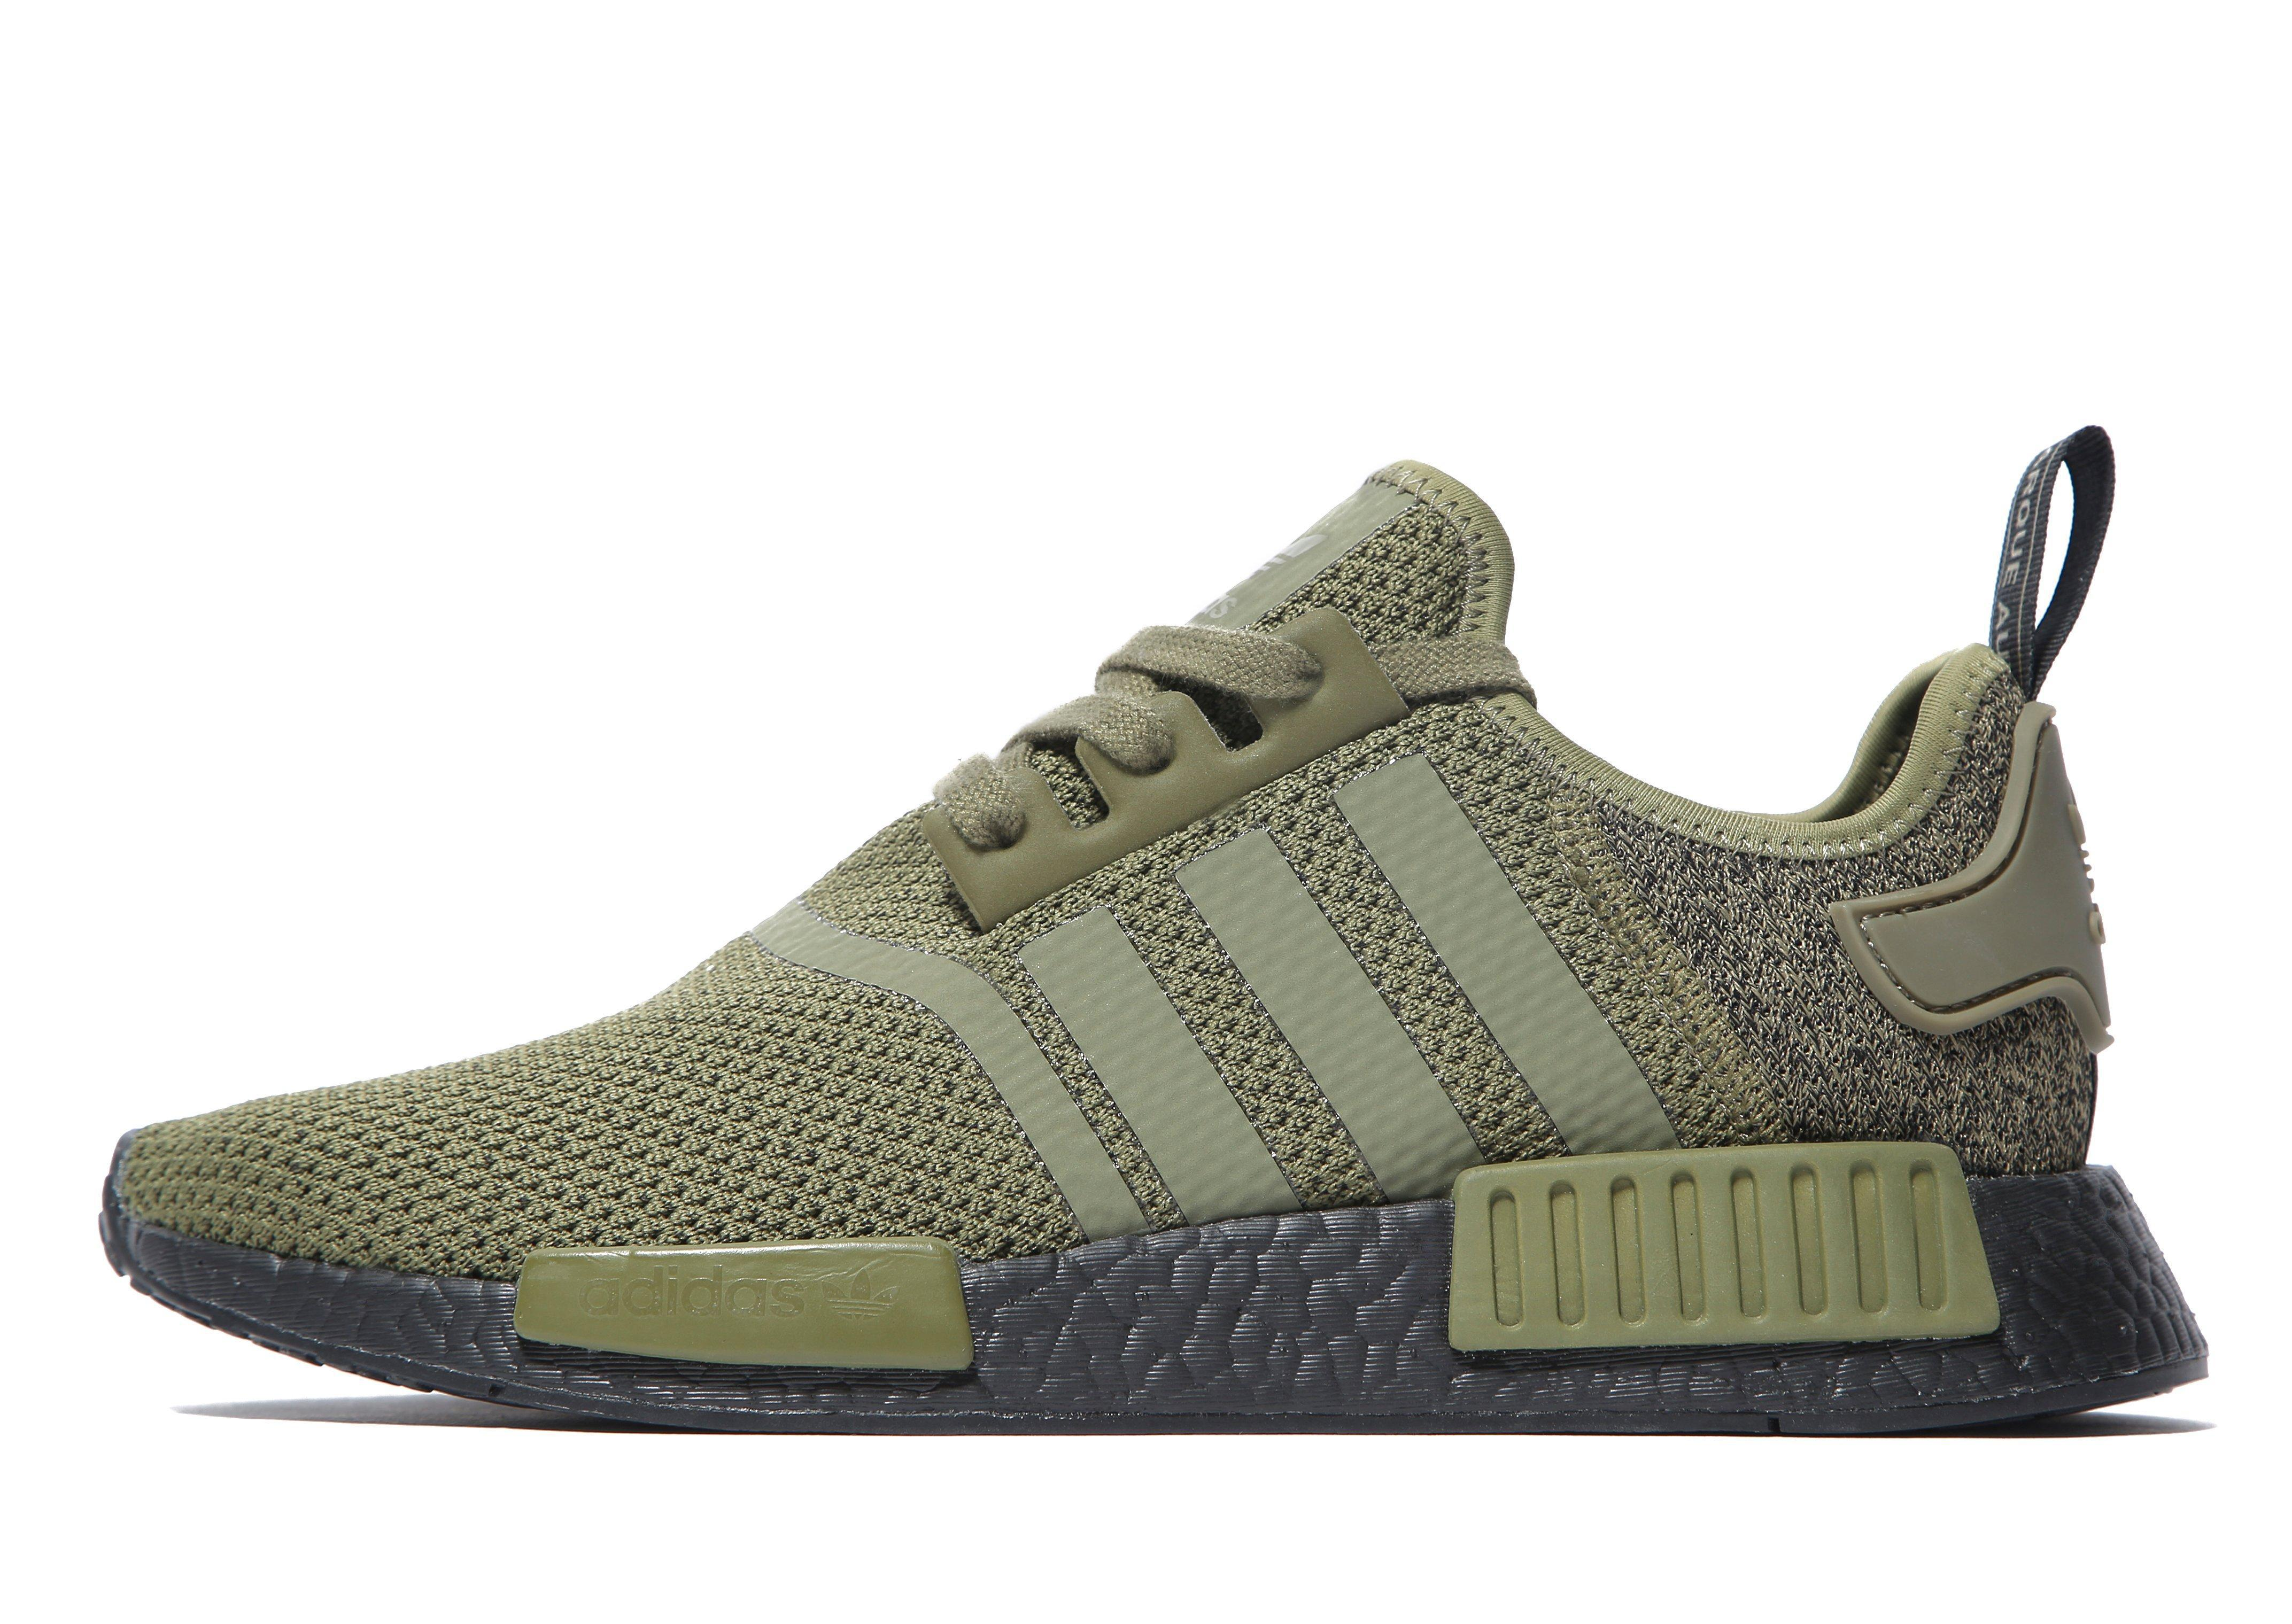 adidas Originals Nmd R1 in Green for Men - Lyst